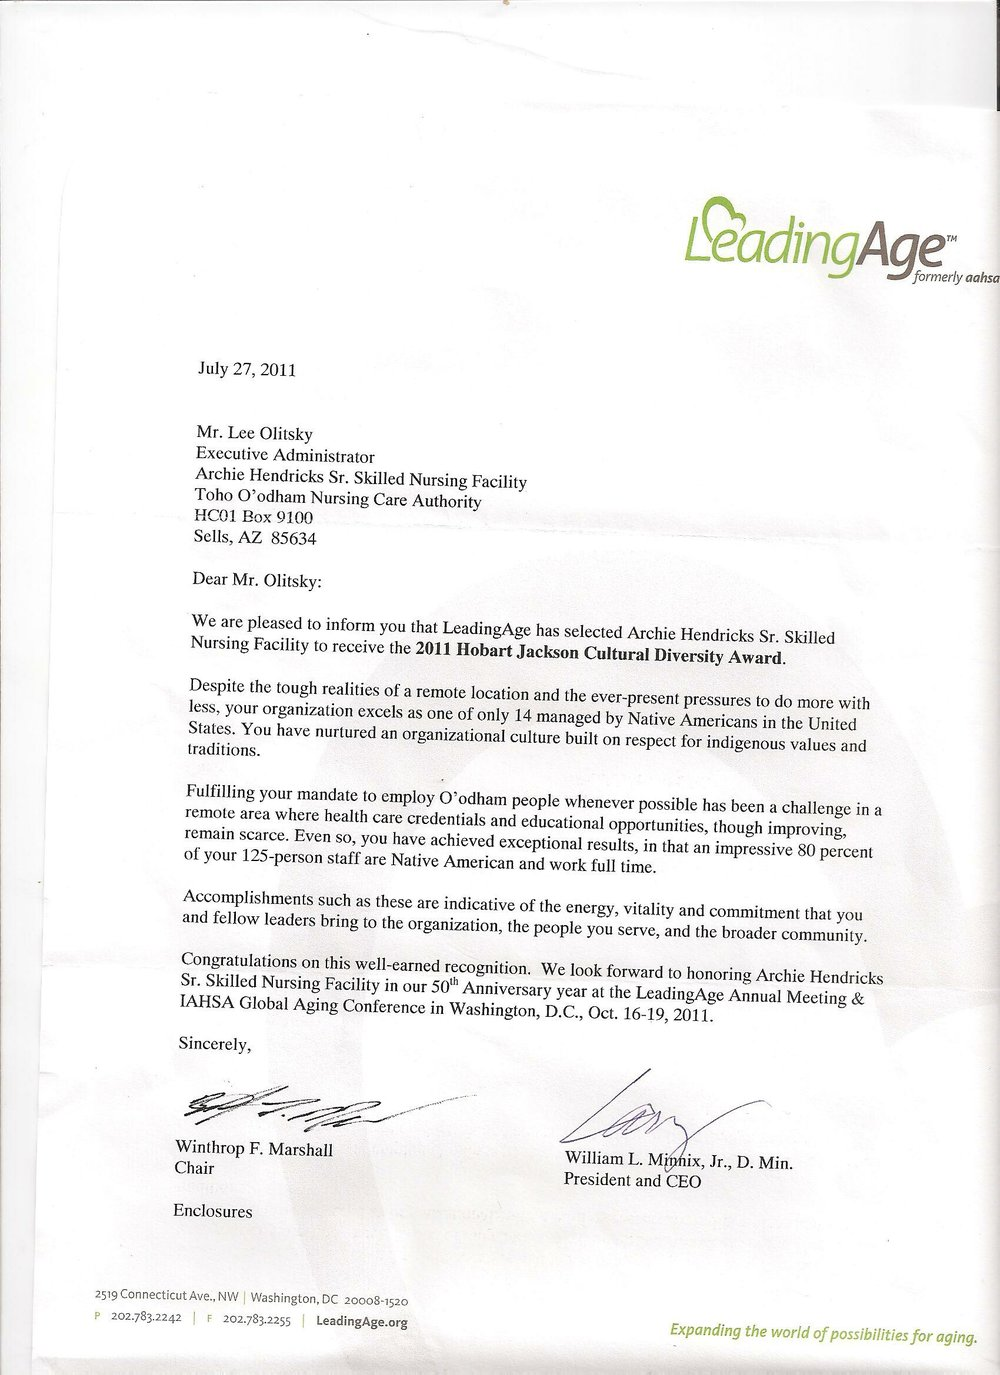 Letter from LeadingAge.jpg